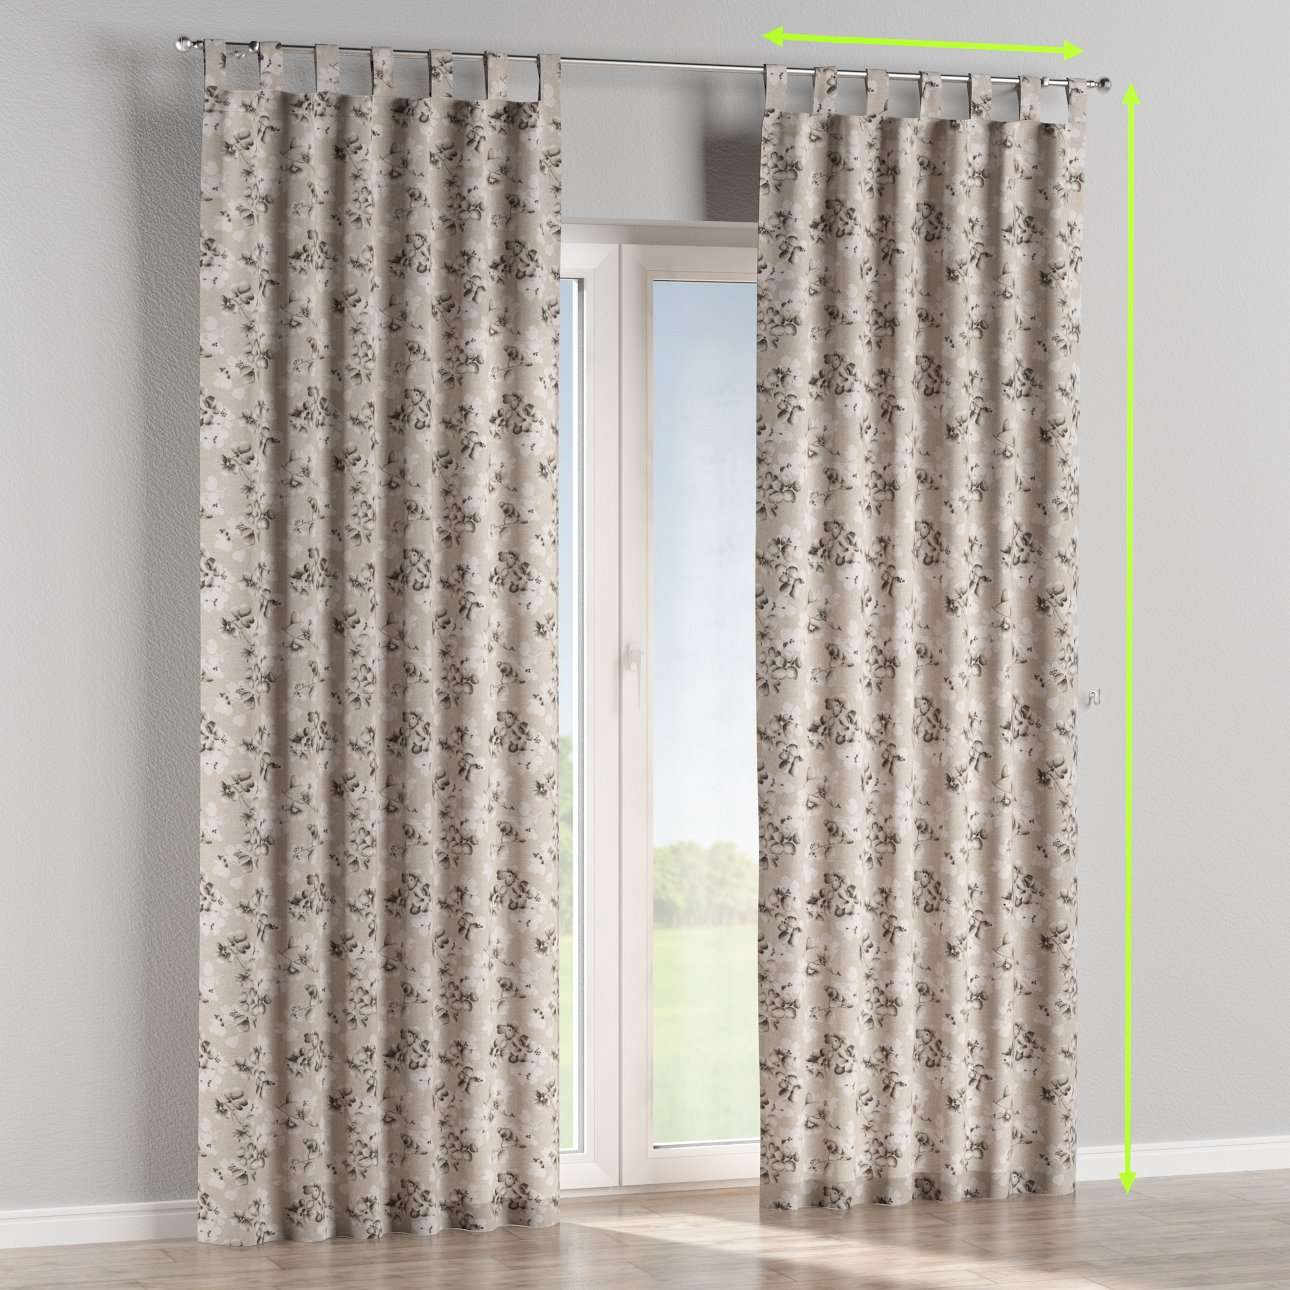 Tab top curtains in collection Rustica, fabric: 138-14